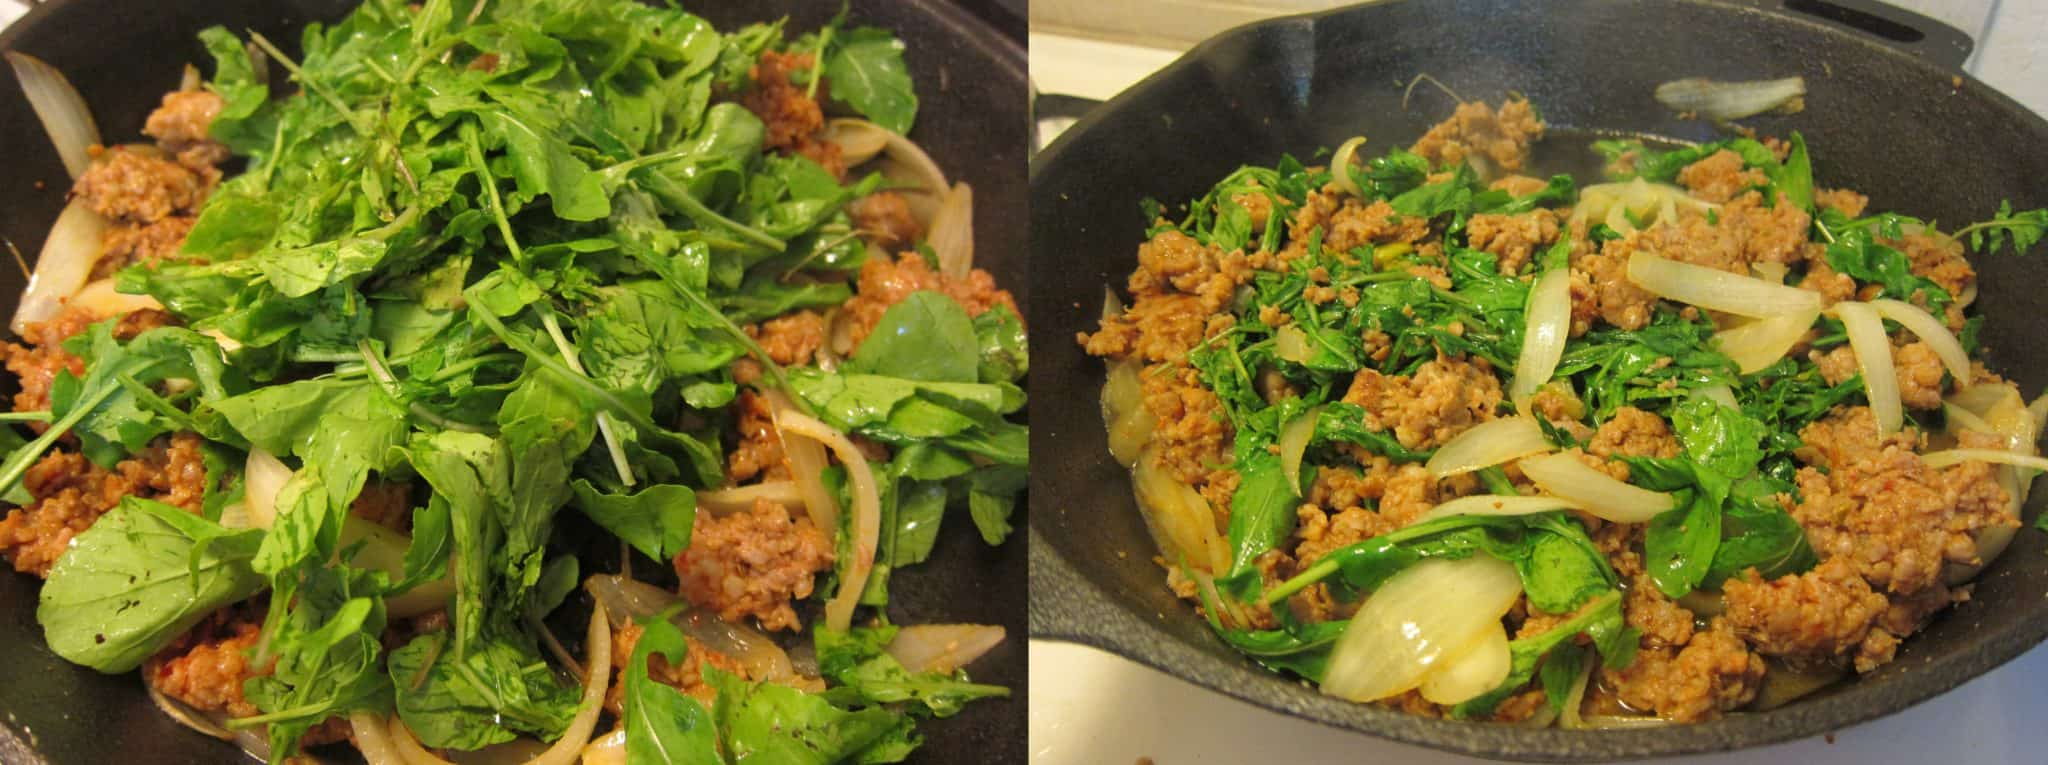 Baked Potatoes With Sausage And Arugula Recipe — Dishmaps